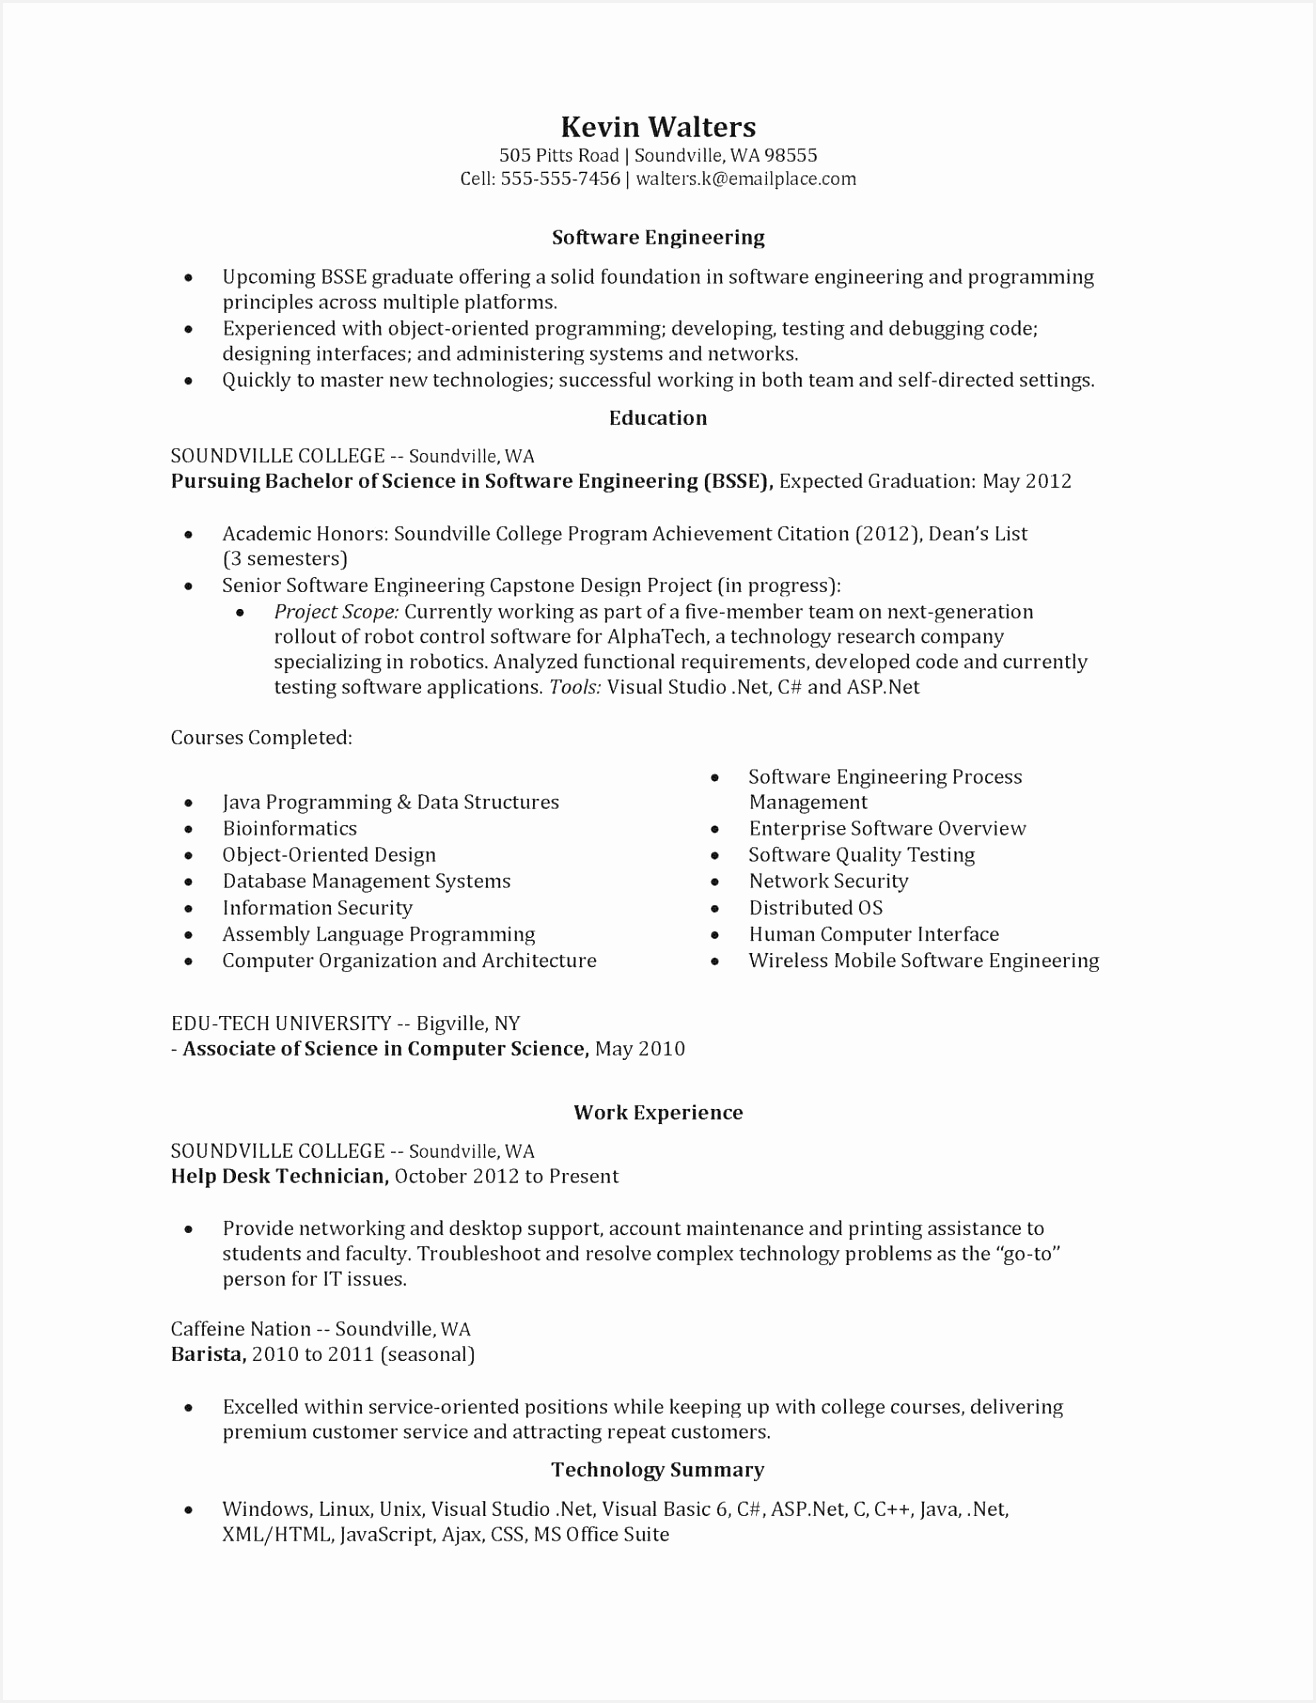 Resume Samples for Graduate School Qcsae Lovely Graduate School Resume Examples Unique Lpn Resume Sample New Line Of Resume Samples for Graduate School V2ige Luxury 18 Academic Resume Template for Grad School Examples Graduate Resume